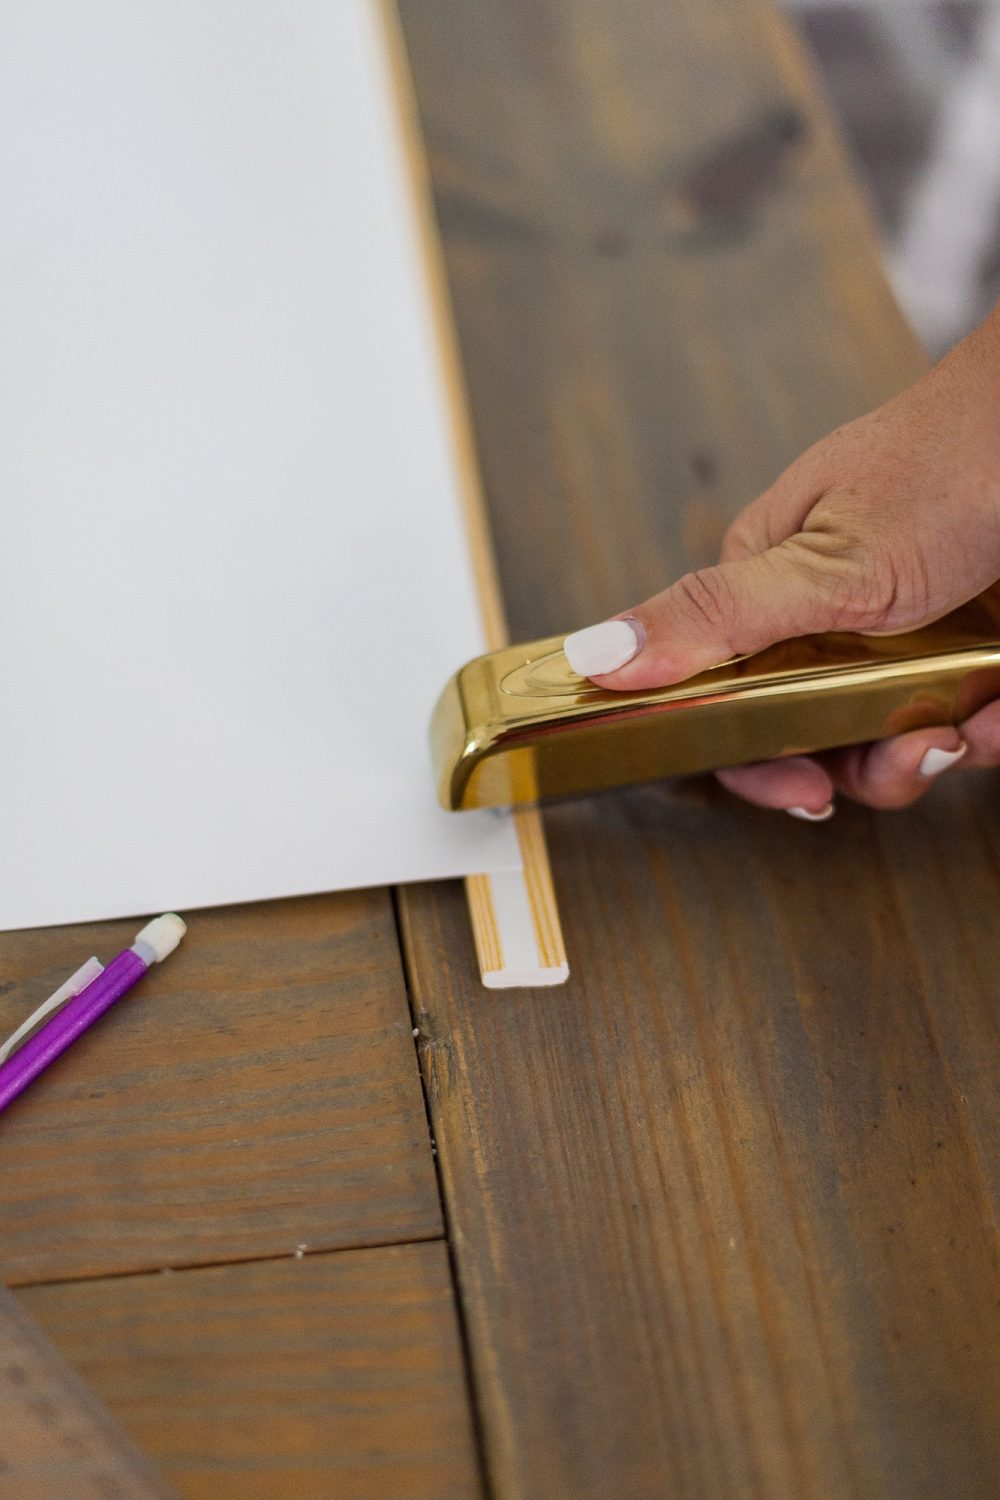 Click through for a fun, EASY DIY poster hanger tutorial. You can make your own DIY poster hanger for $3 in just a few short minutes! | DIY Poster Hanger by popular Florida DIY blog, Fresh Mommy Blog: image of a woman attaching a poster board to some wood moulding with a gold stapler.